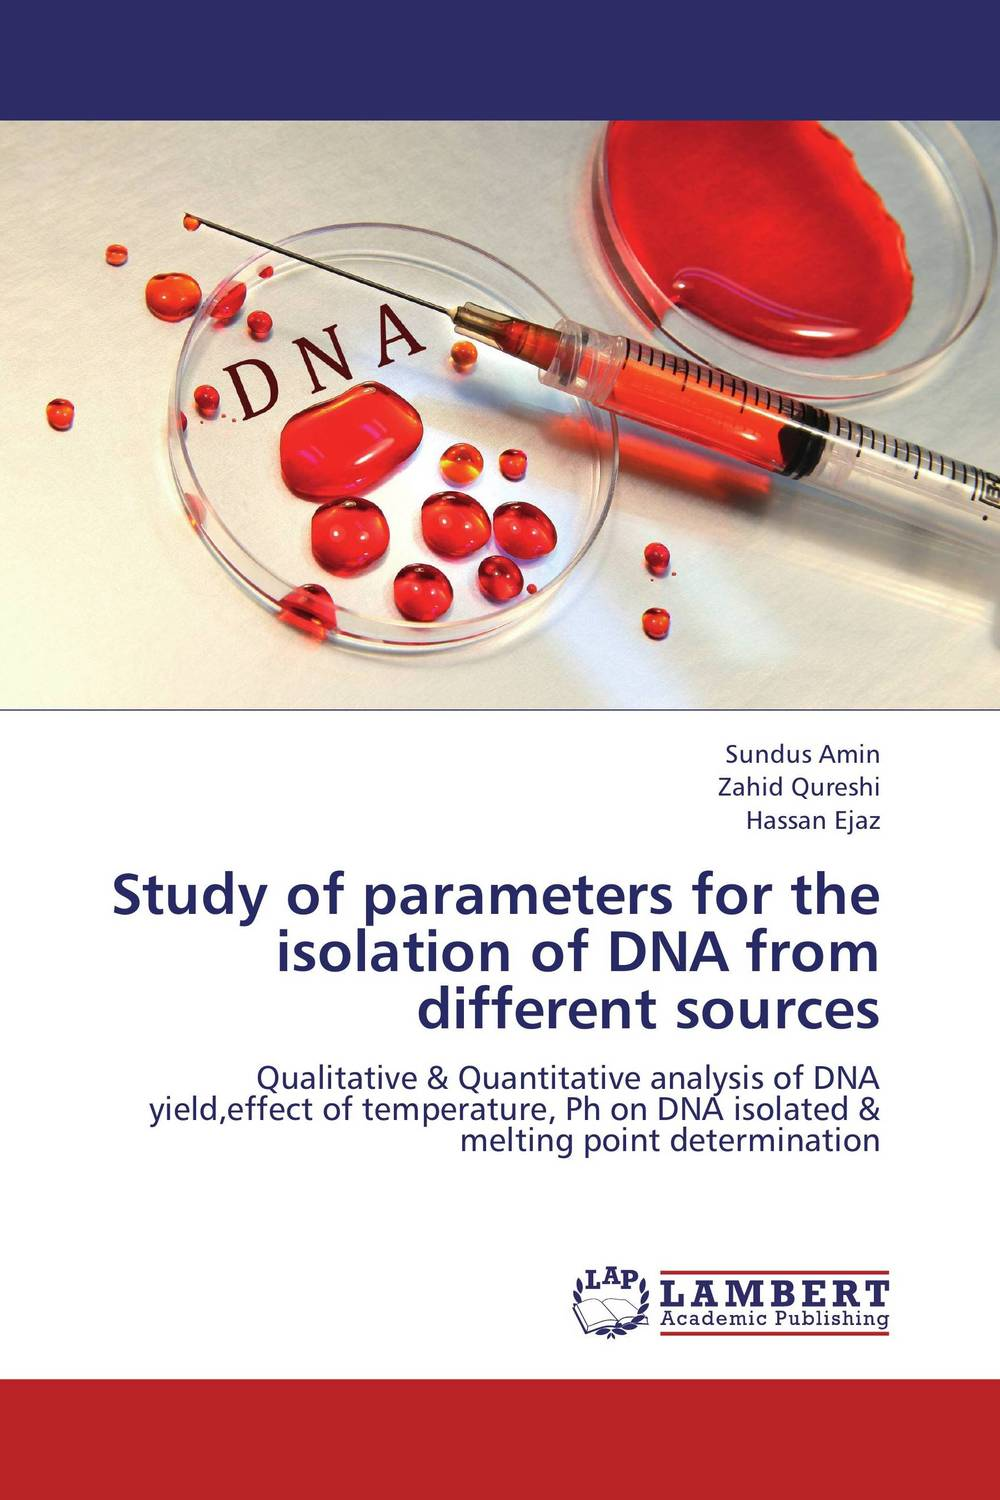 Study of parameters for the isolation of DNA from different sources